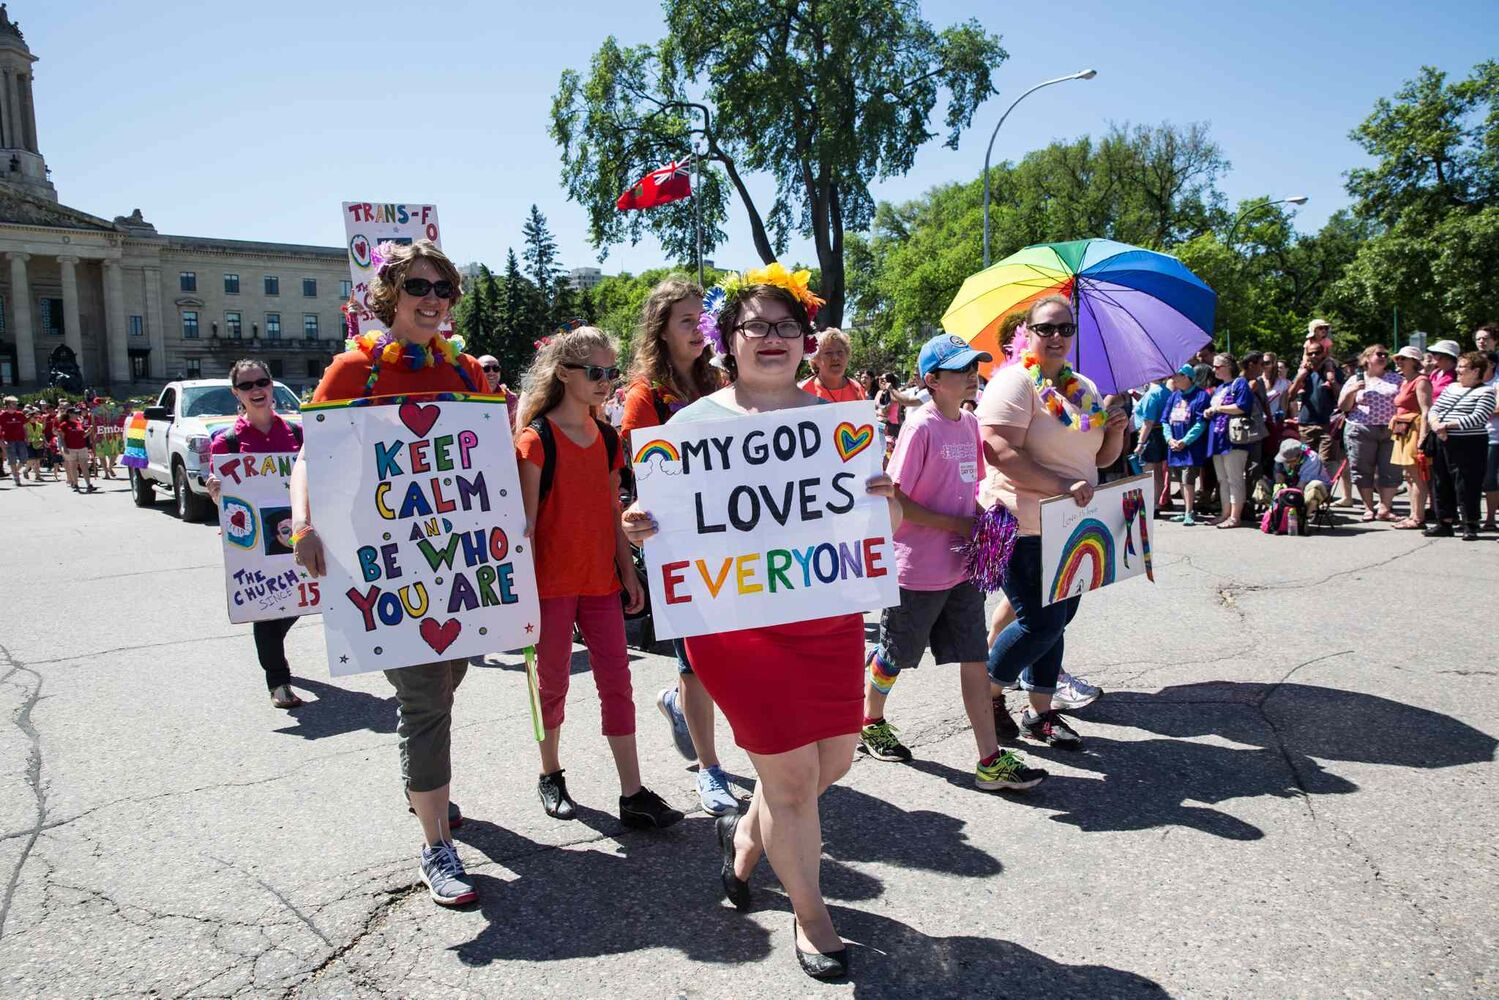 Participants display signs with inclusive messages during the 2016 Winnipeg Pride Parade. (Mike Deal / Winnipeg Free Press)